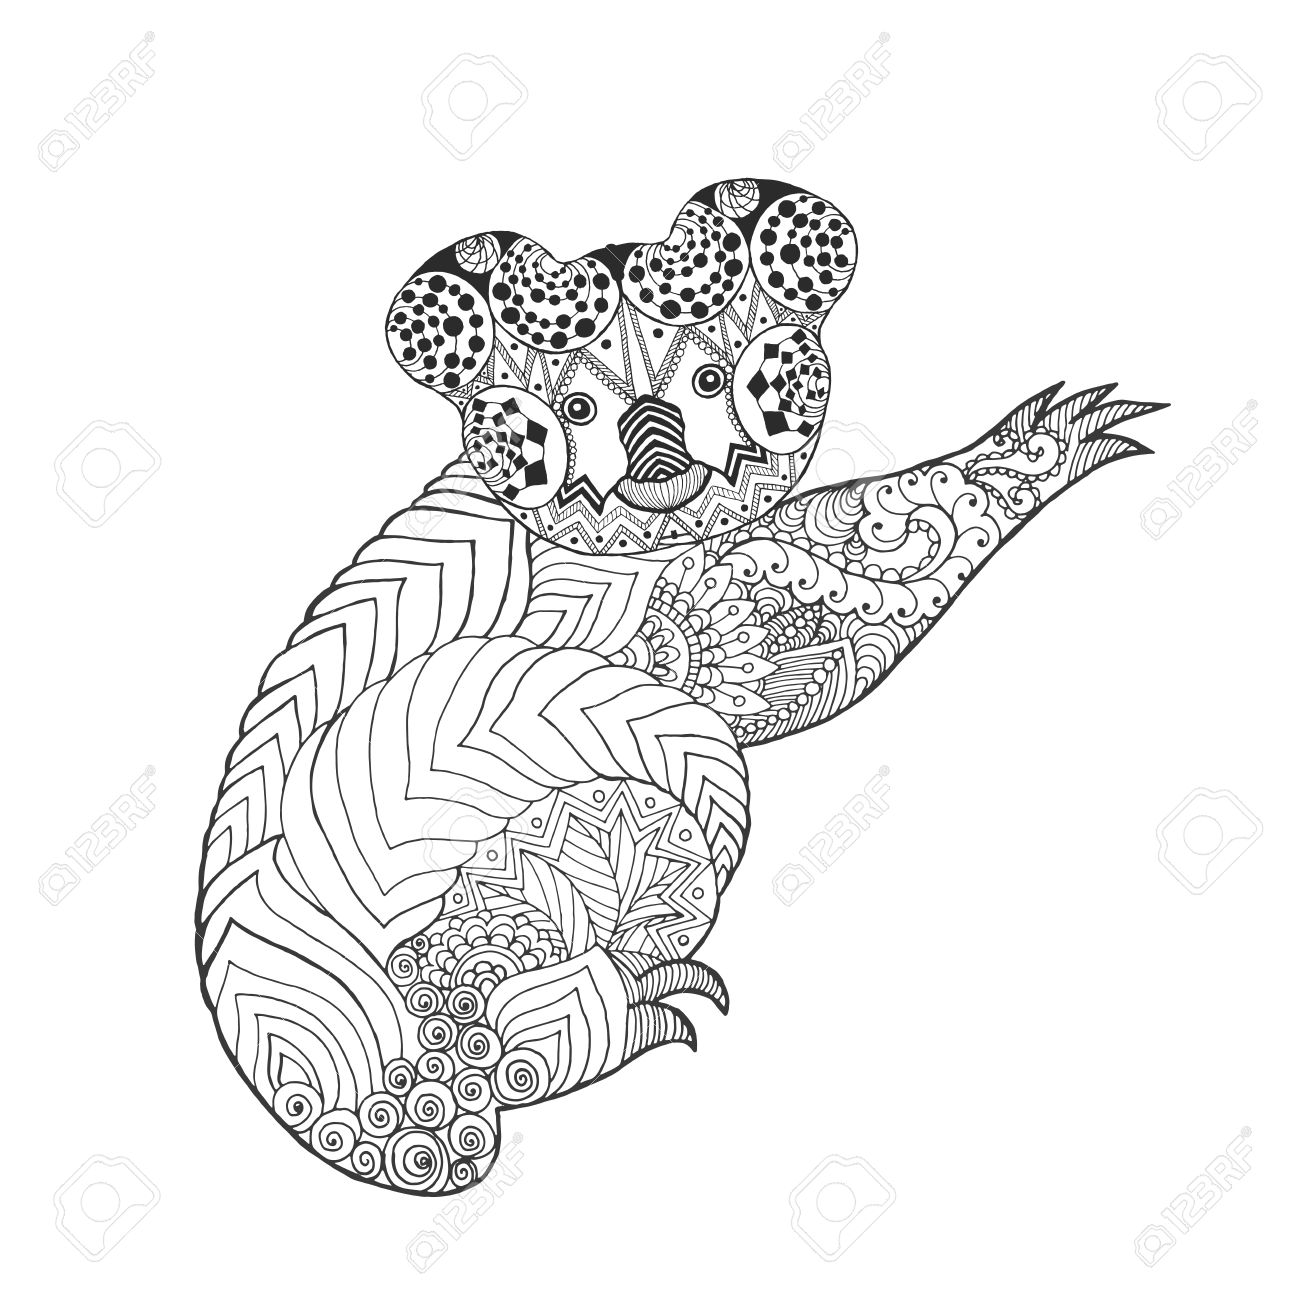 Koala Stylise Main Blanche Noire Dessinee Animale Doodle Ethnique